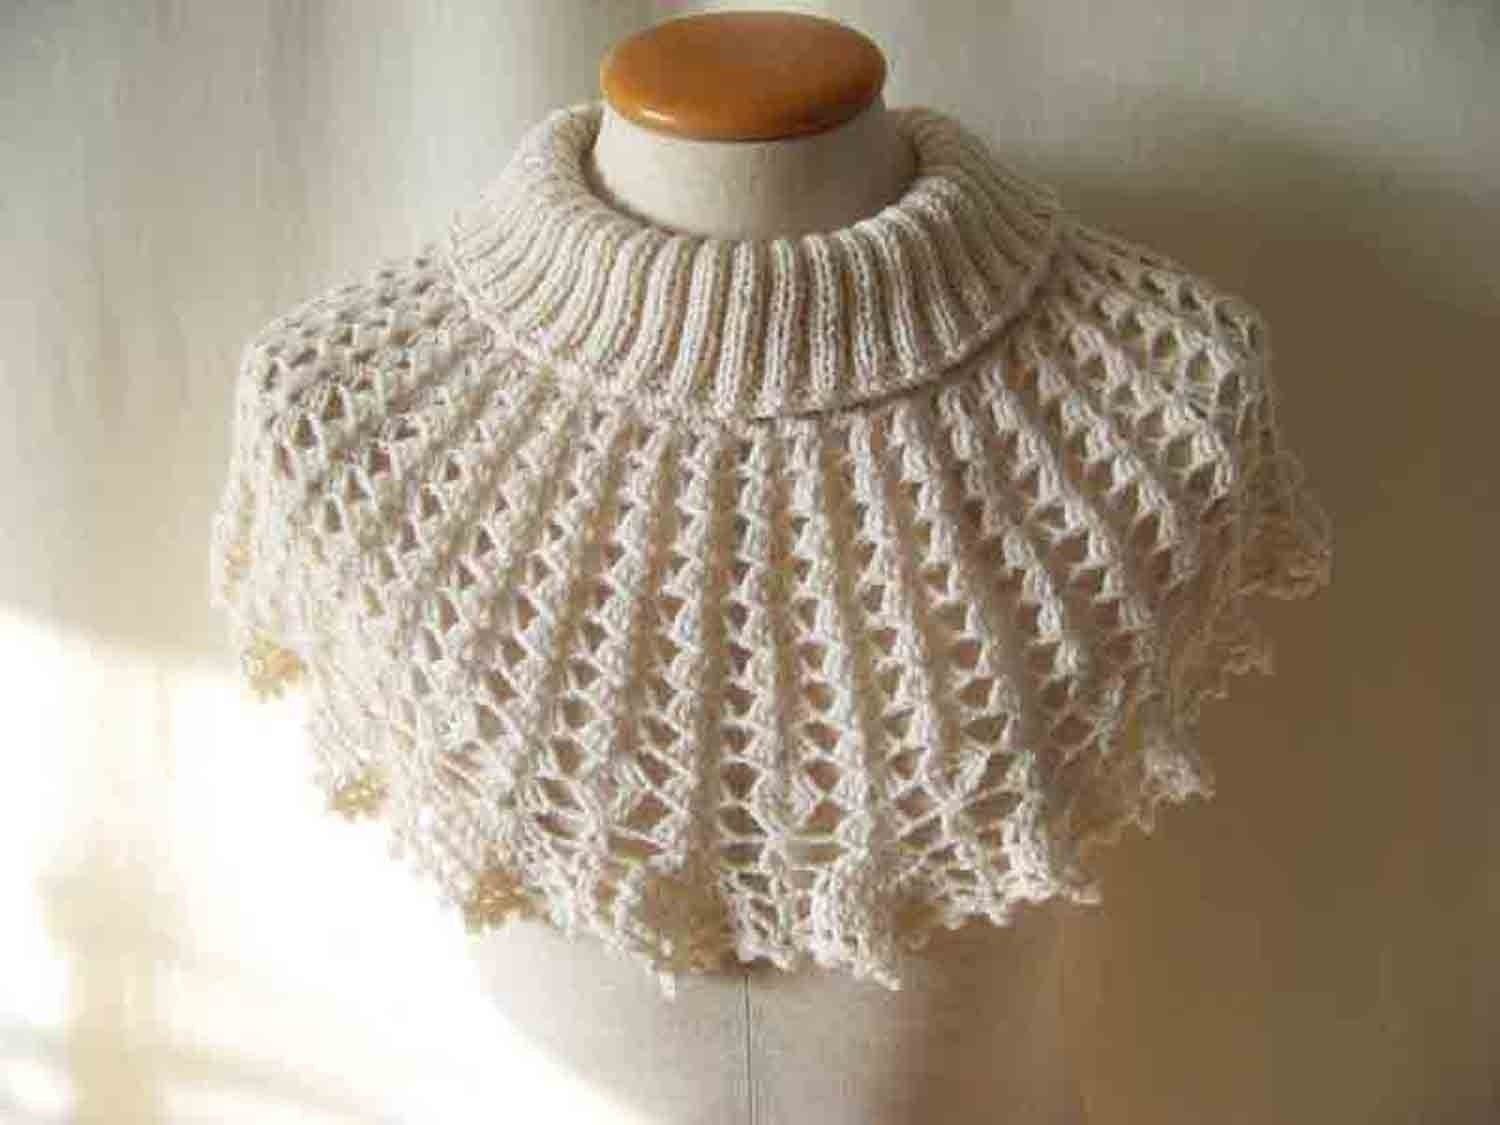 Crochet And Knitting Patterns : Capelet Knitting Pattern Free Capelet Knitting Pattern Free - the